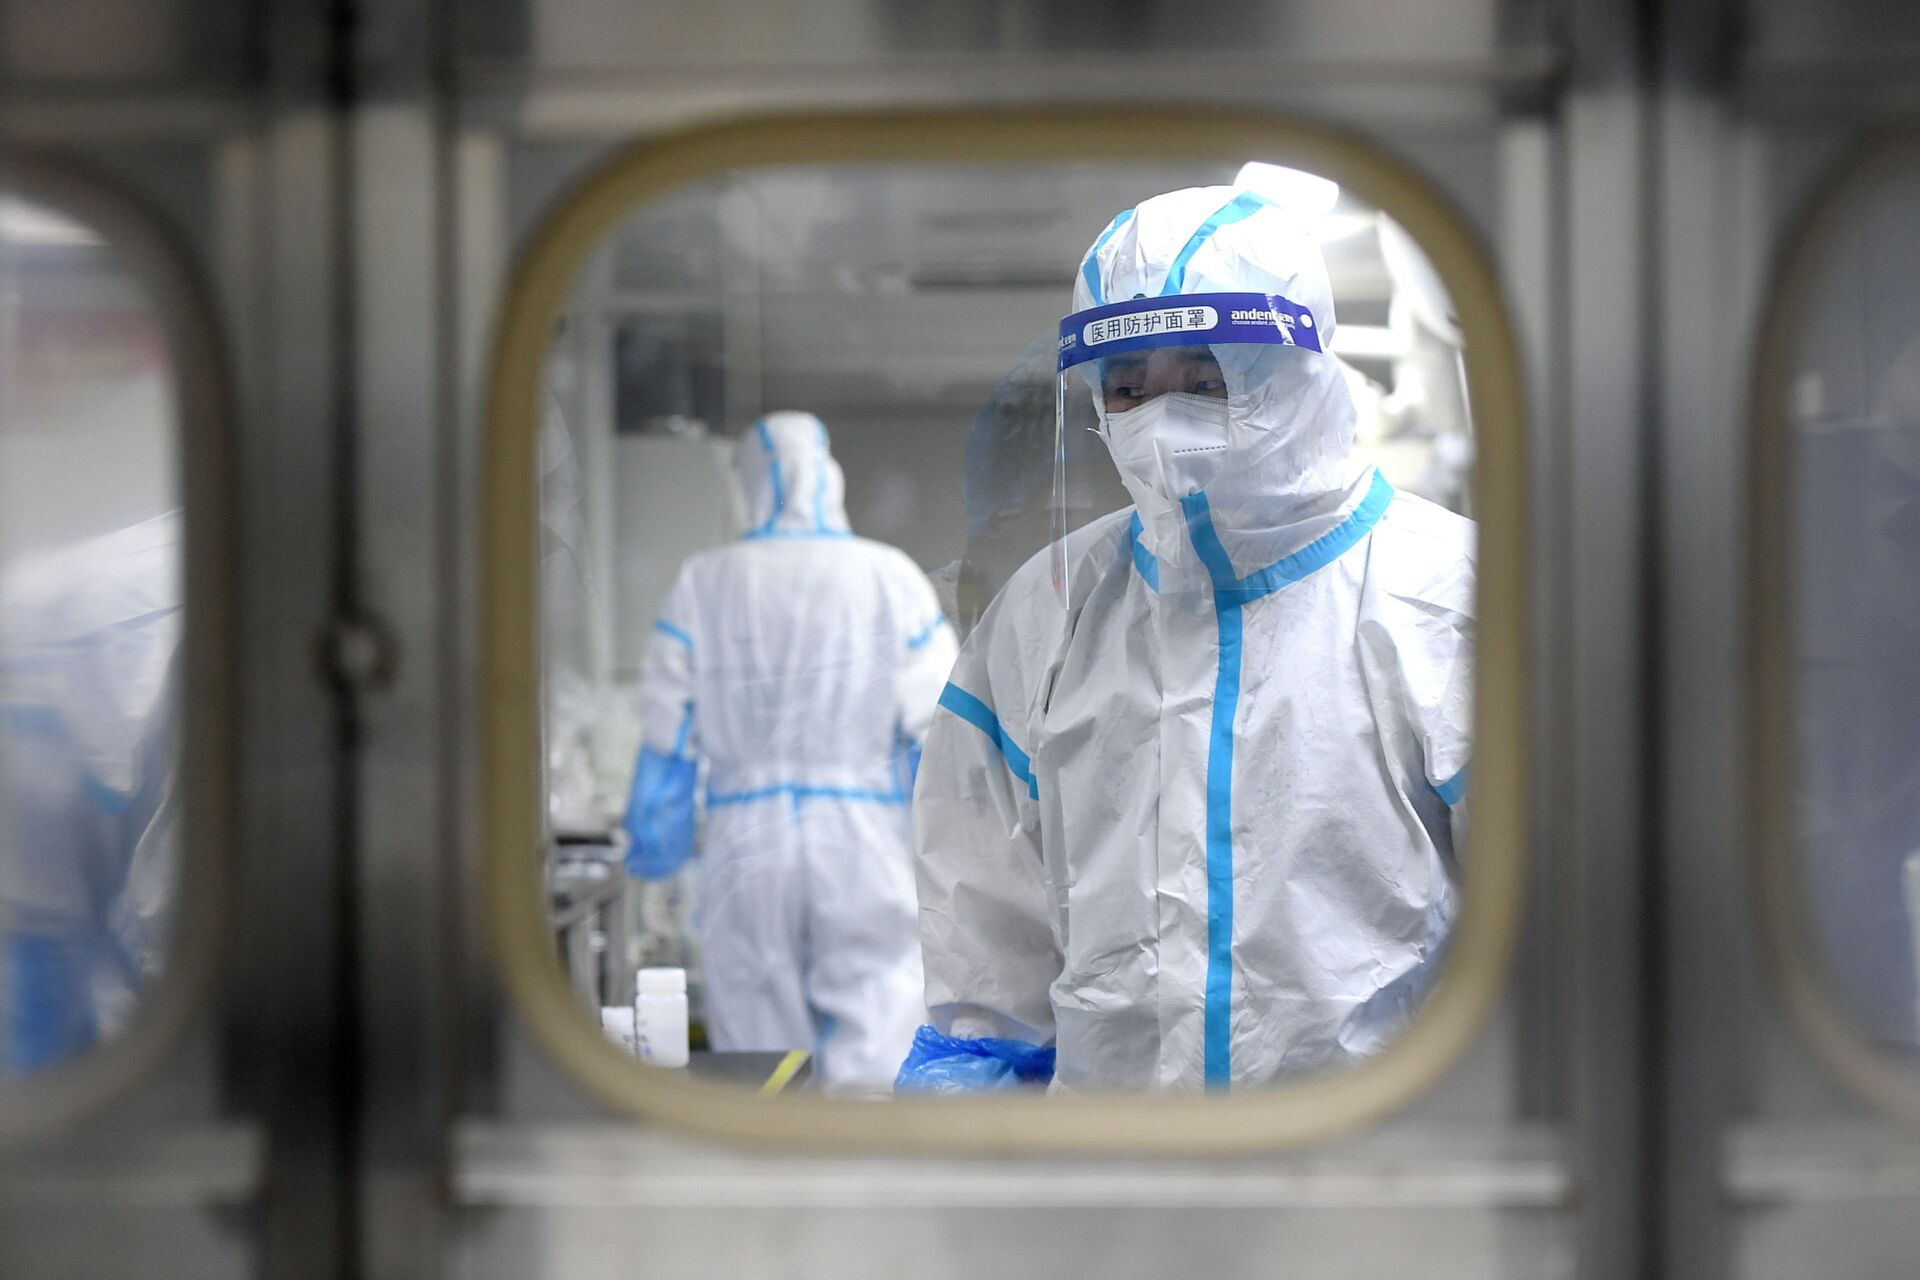 Medical workers in protective suits test nucleic acid samples inside a Huo-Yan (Fire Eye) laboratory of BGI, following new cases of the coronavirus disease (COVID-19) in Wuhan, Hubei province, China early August 5, 2021 - Sputnik International, 1920, 07.09.2021